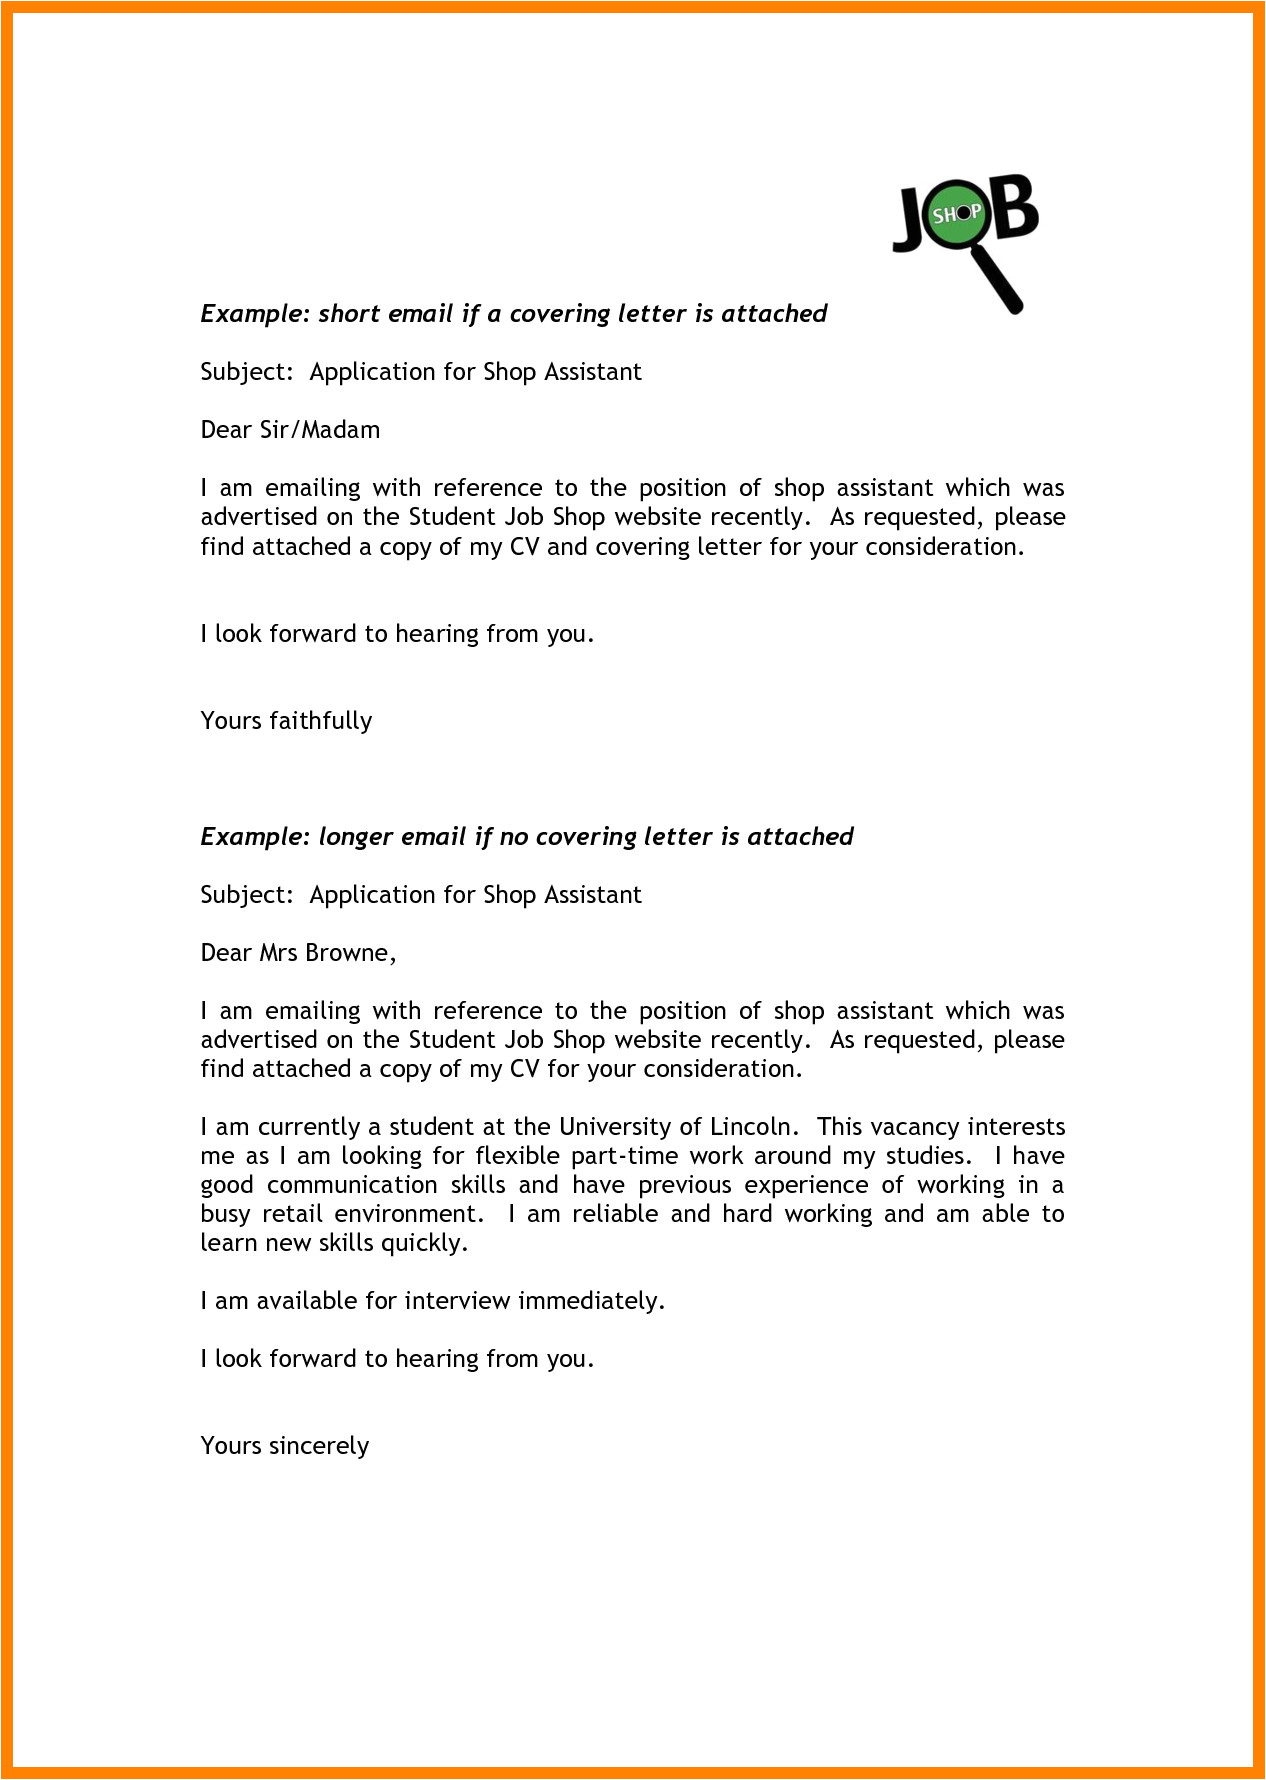 6 email covering letter for job application